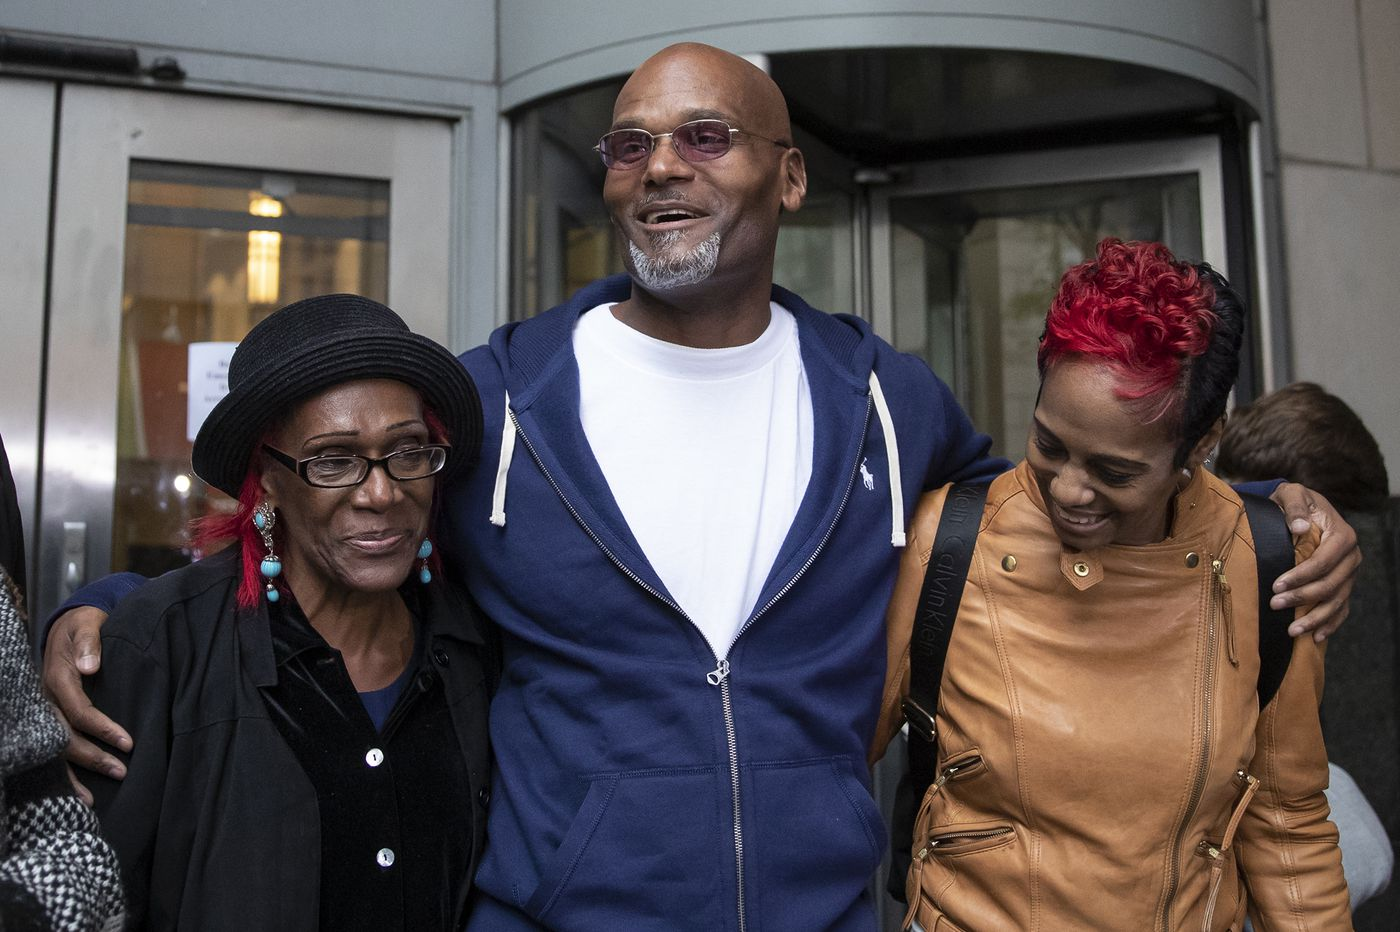 North Philly man cleared of murder after 27 years in prison, the 10th exoneration under DA Larry Krasner